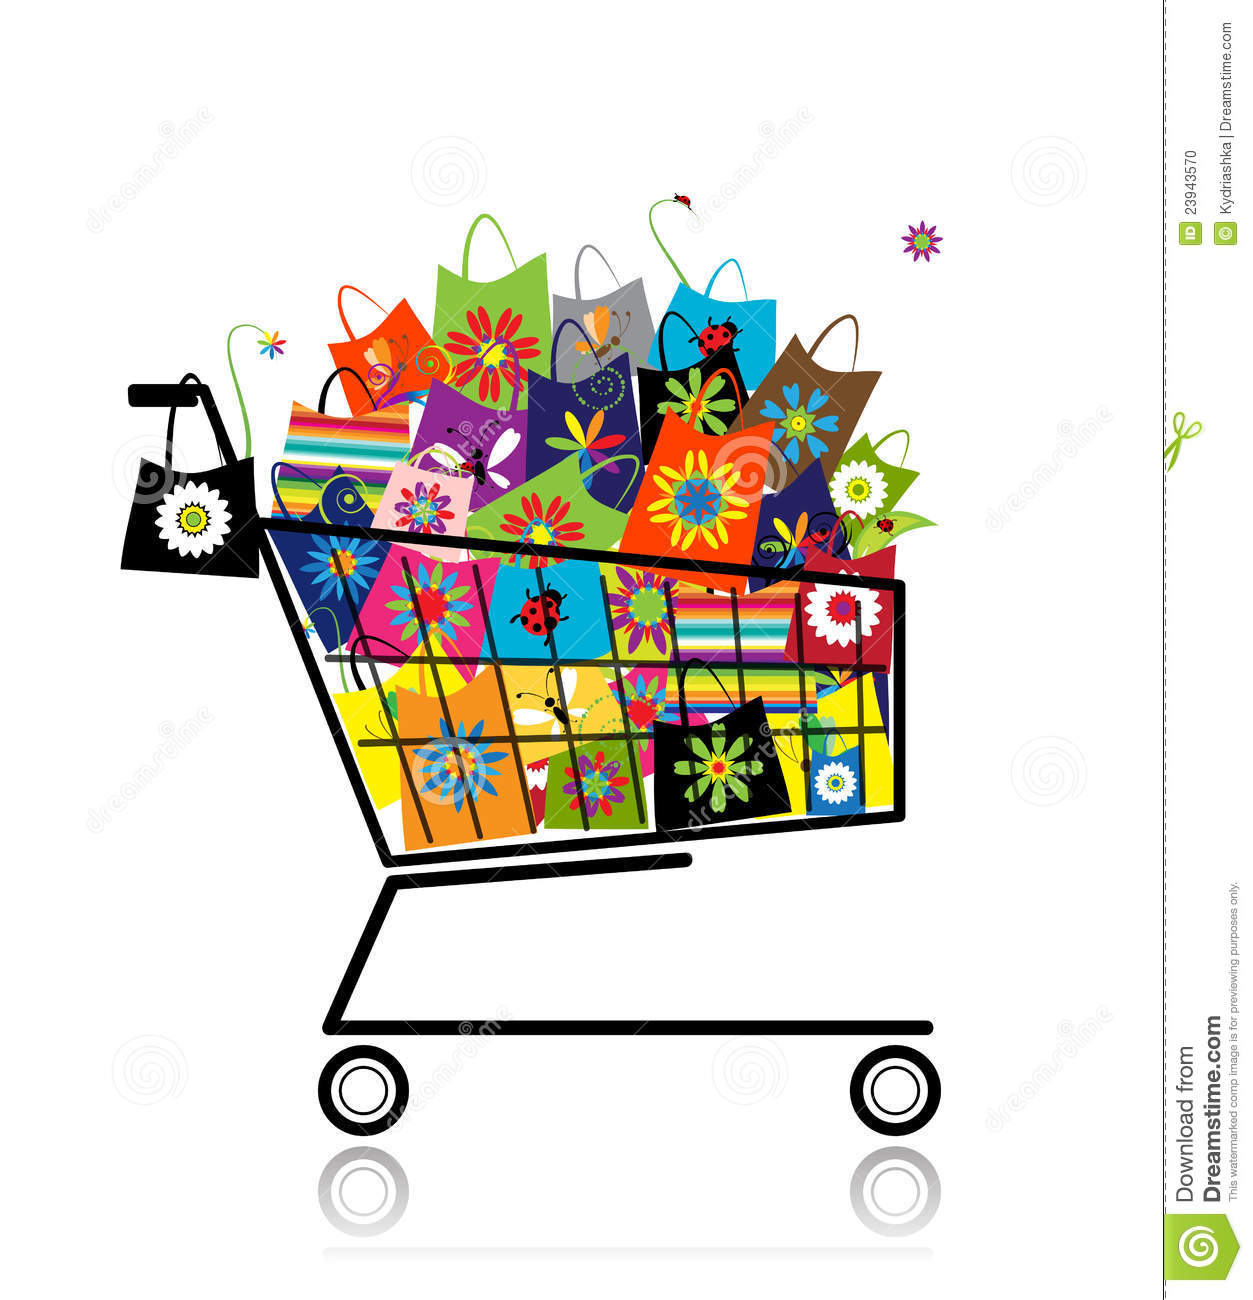 More similar stock images of ` Supermarket cart with shopping bags `